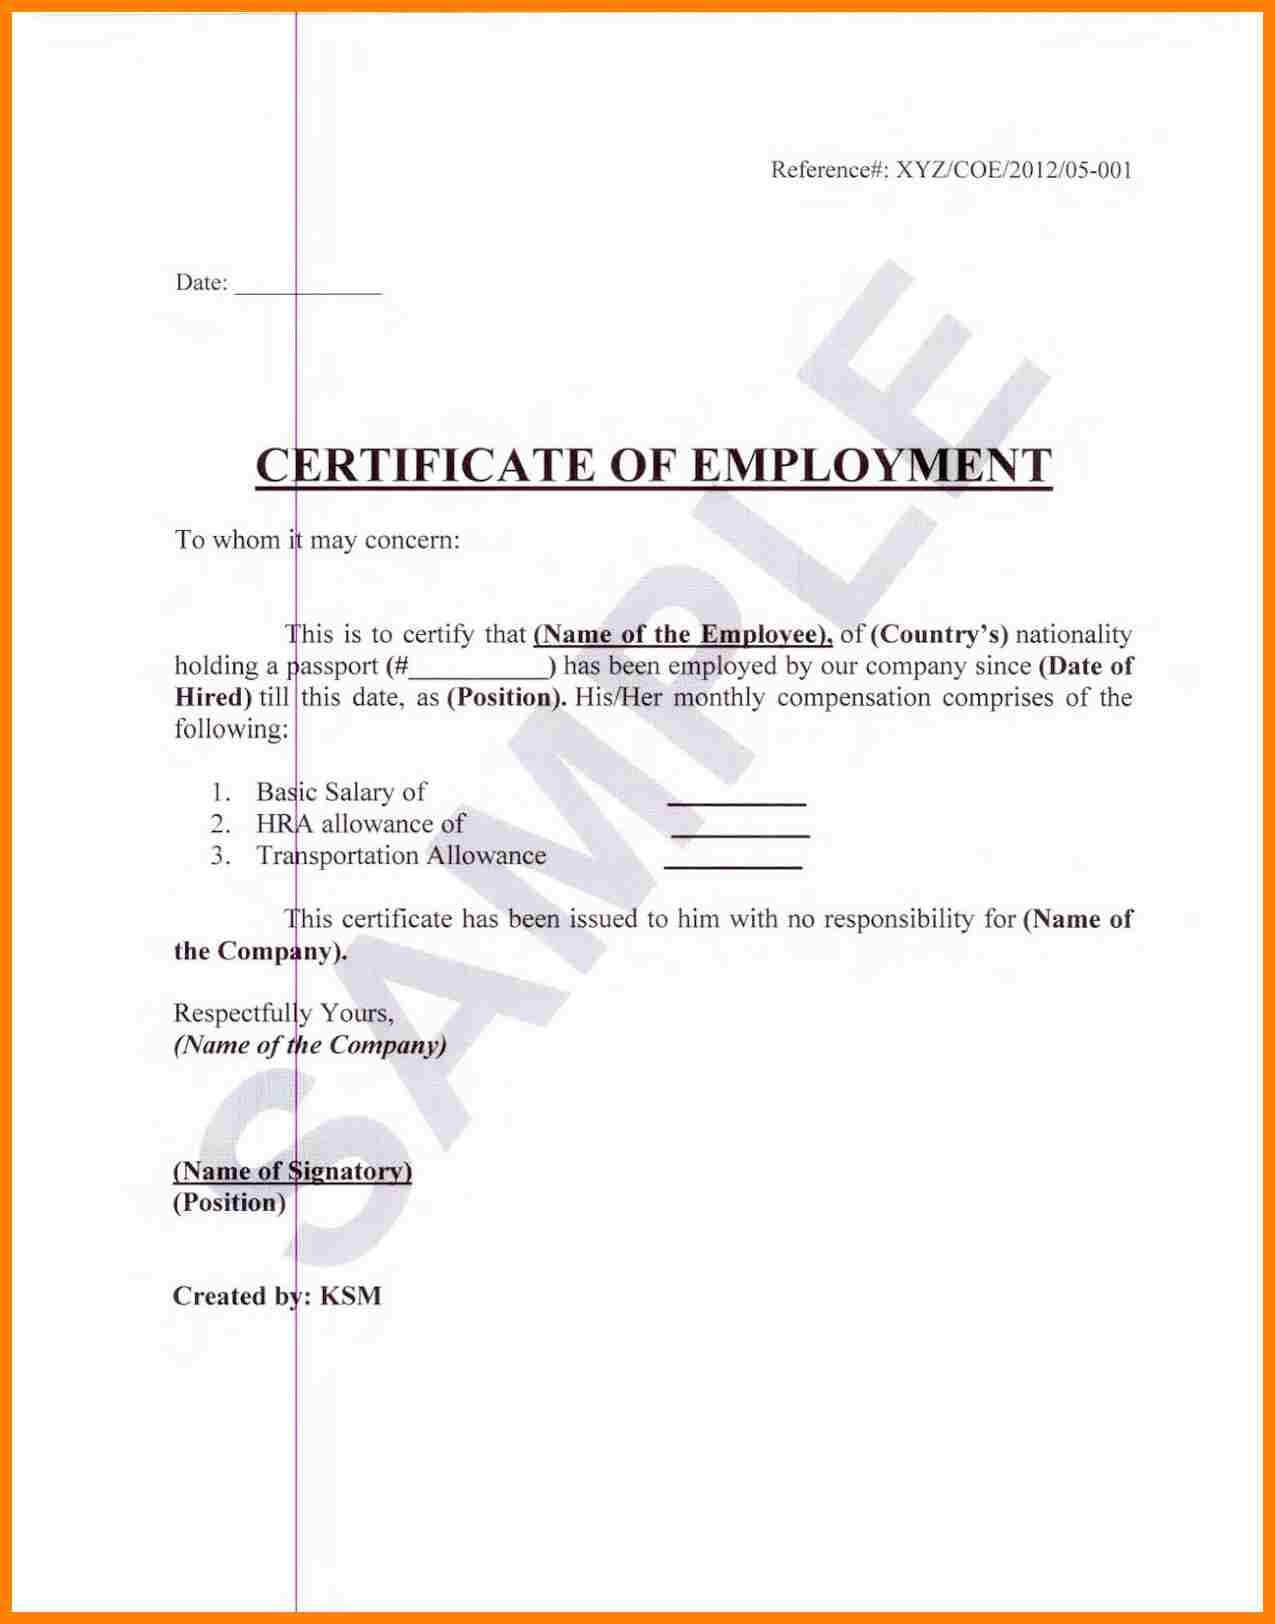 Sample Certification Employment Certificate Tugon Med Clinic Pertaining To Sample Certificate Employment Template